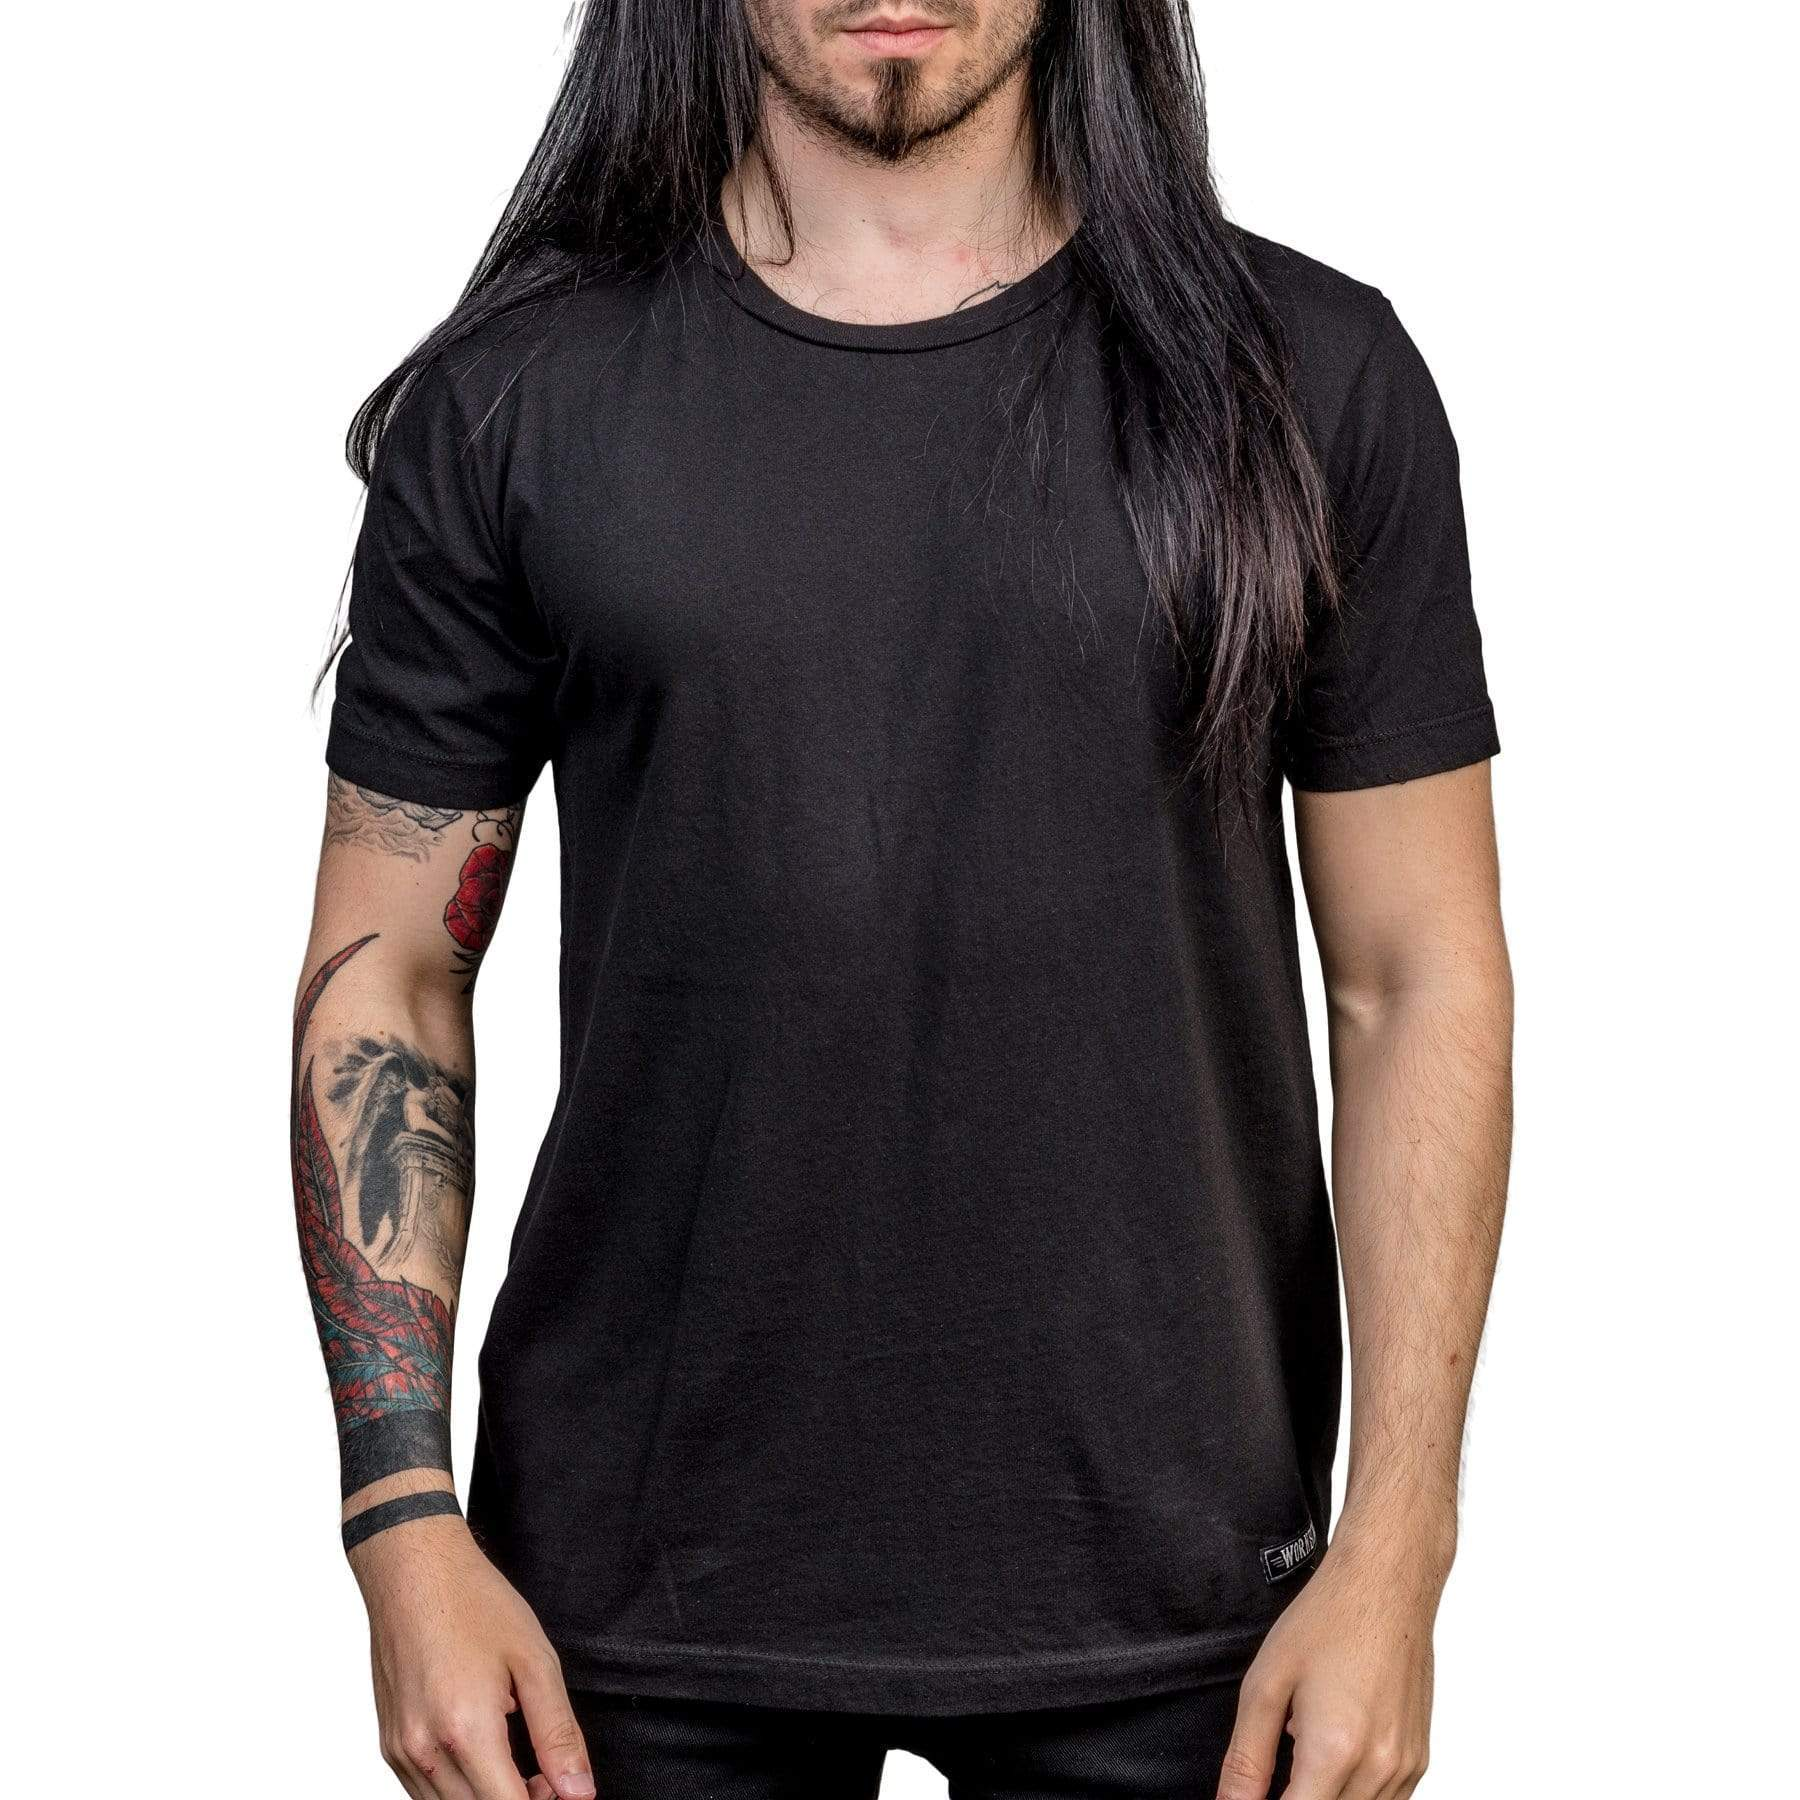 Wornstar Essentials Black T shirt